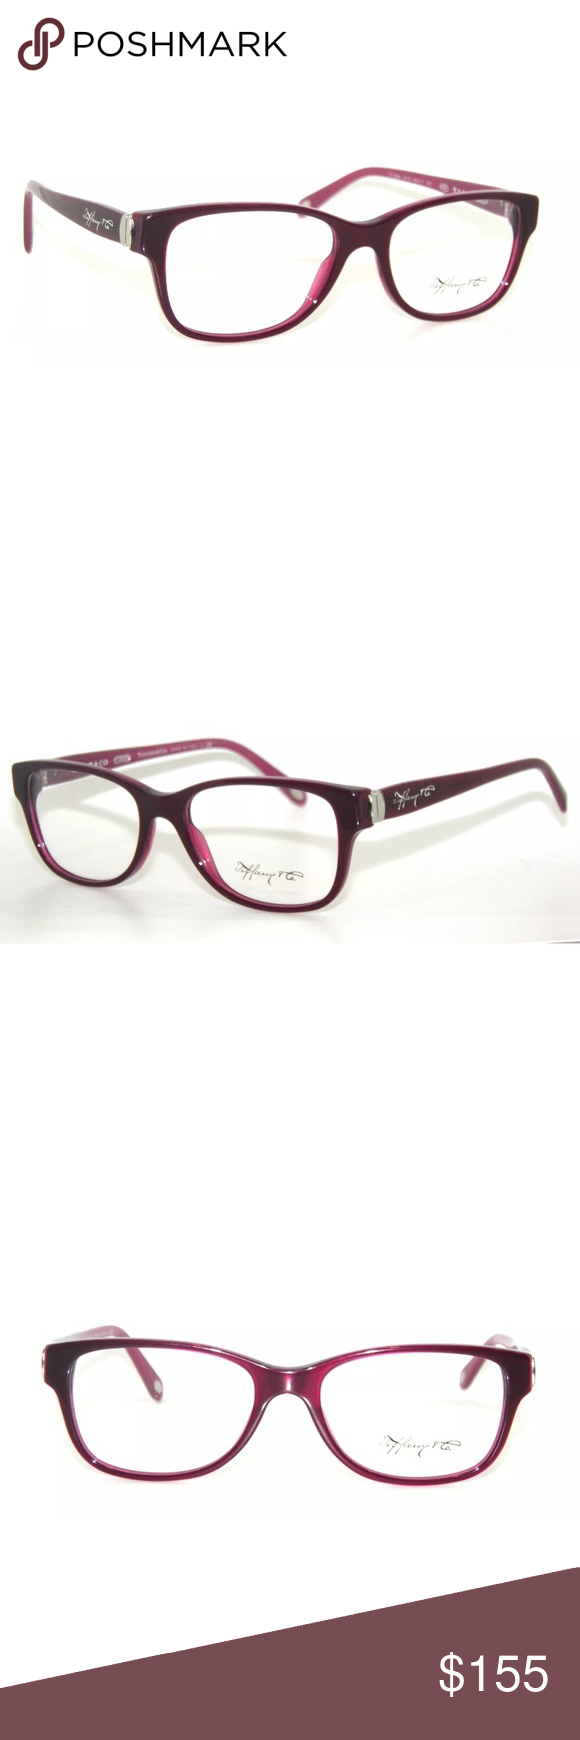 268173e89cd6 Tiffany   Co Plum Optical Eyeglasses 2084 Clear New Comes with Tiffany case Authentic  Tiffany   Co. Accessories Glasses